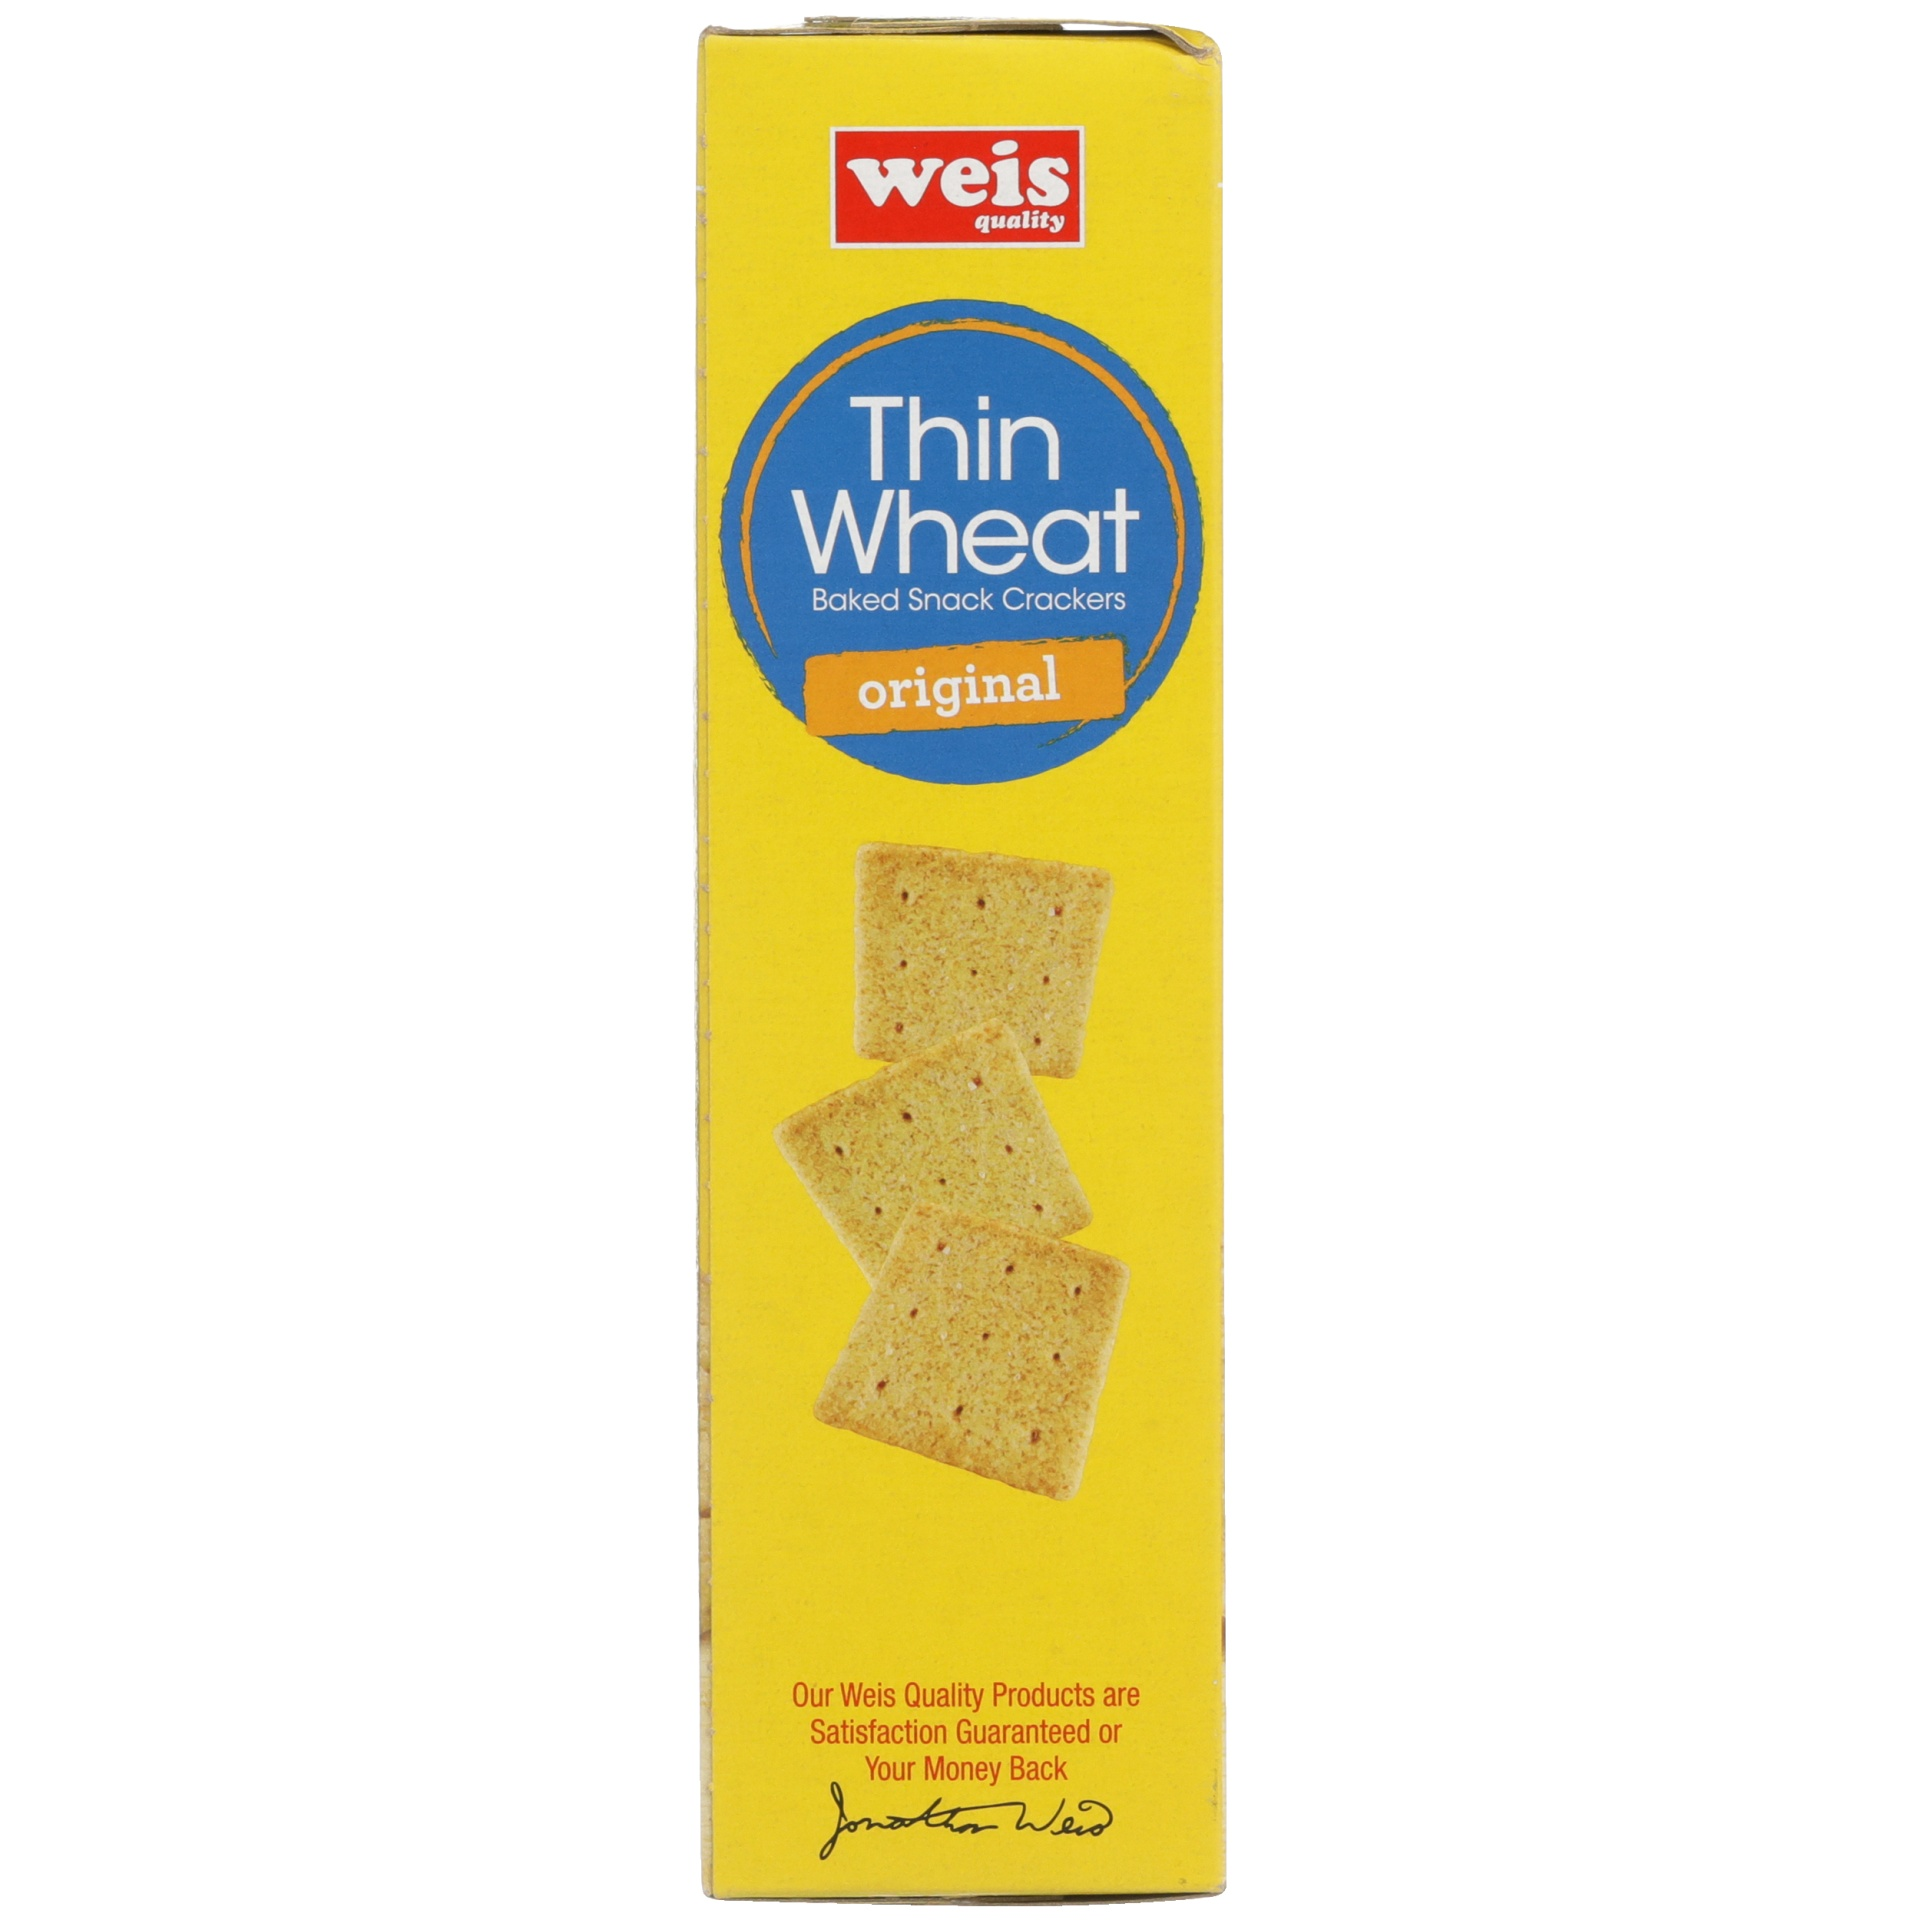 slide 5 of 6, Weis Quality Wheat Thin Cracker,